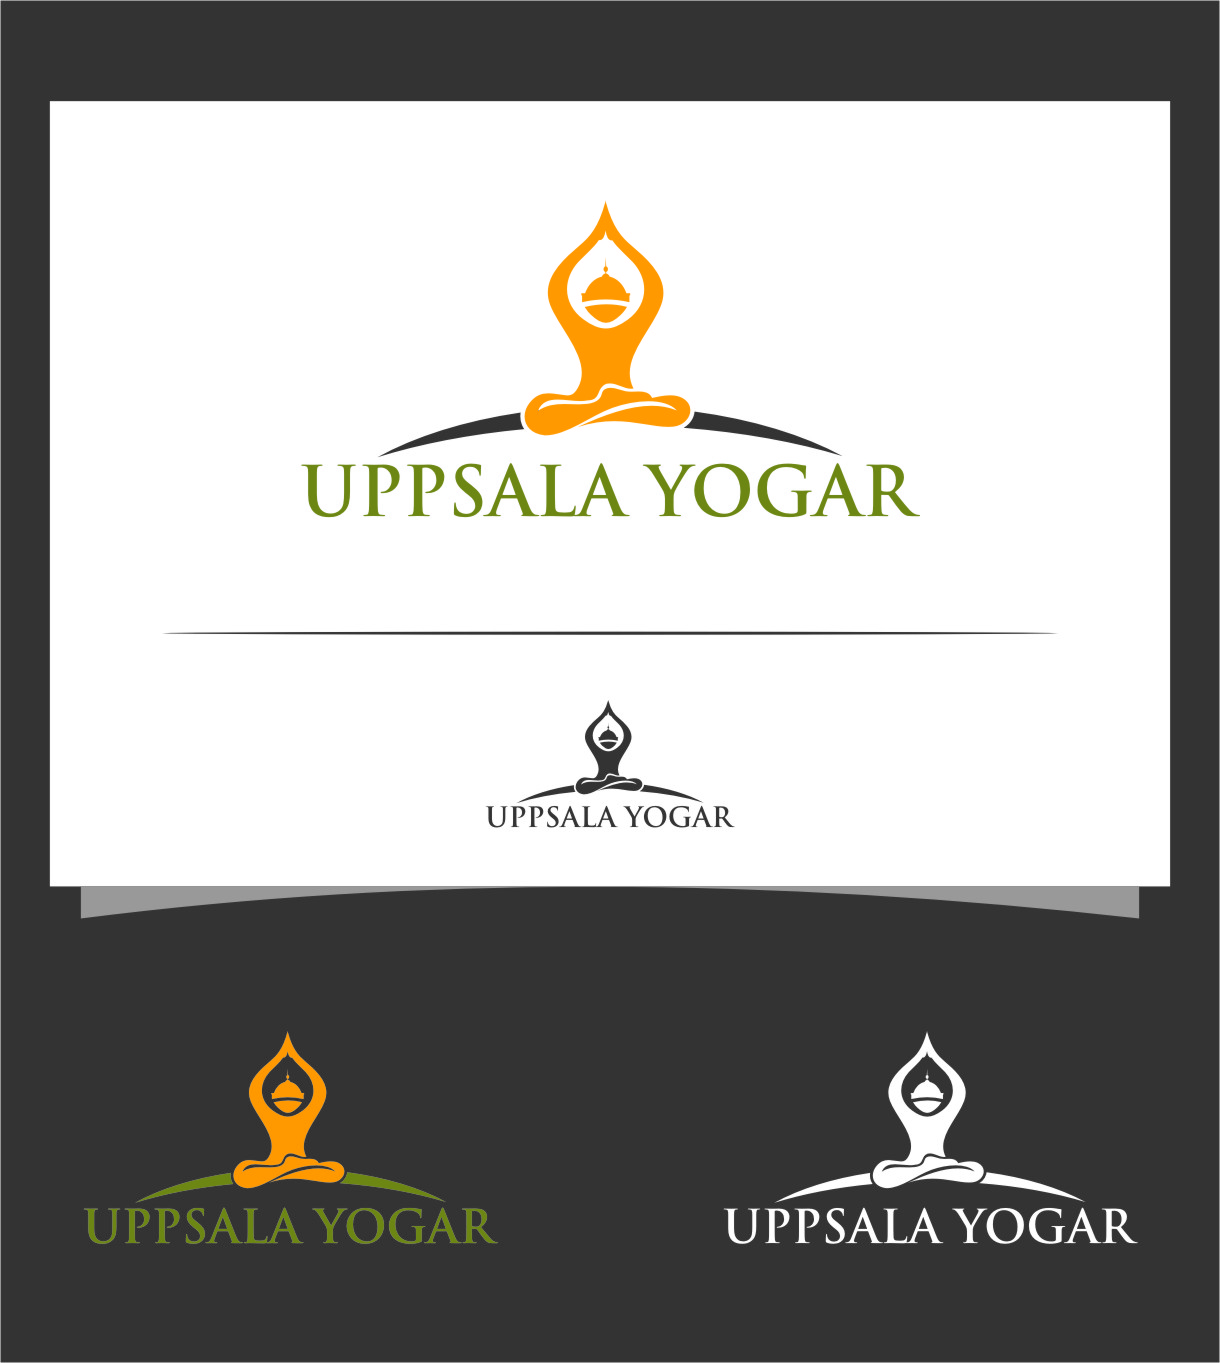 Logo Design by RasYa Muhammad Athaya - Entry No. 61 in the Logo Design Contest Unique Logo Design Wanted for Uppsala Yogar.